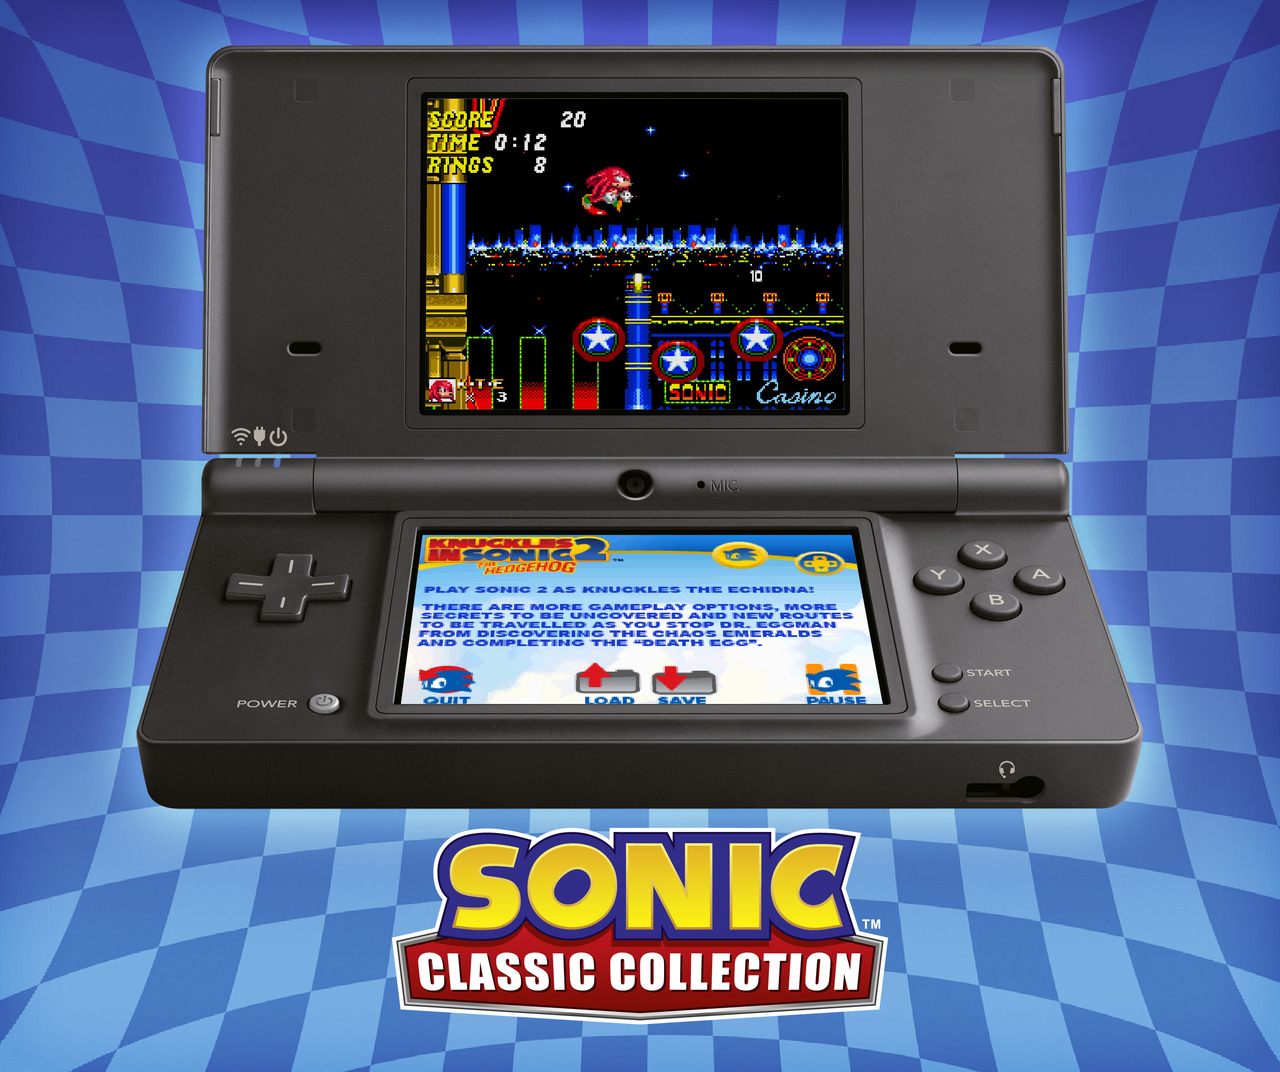 Images Sonic Classic Collection Nintendo DS - 13